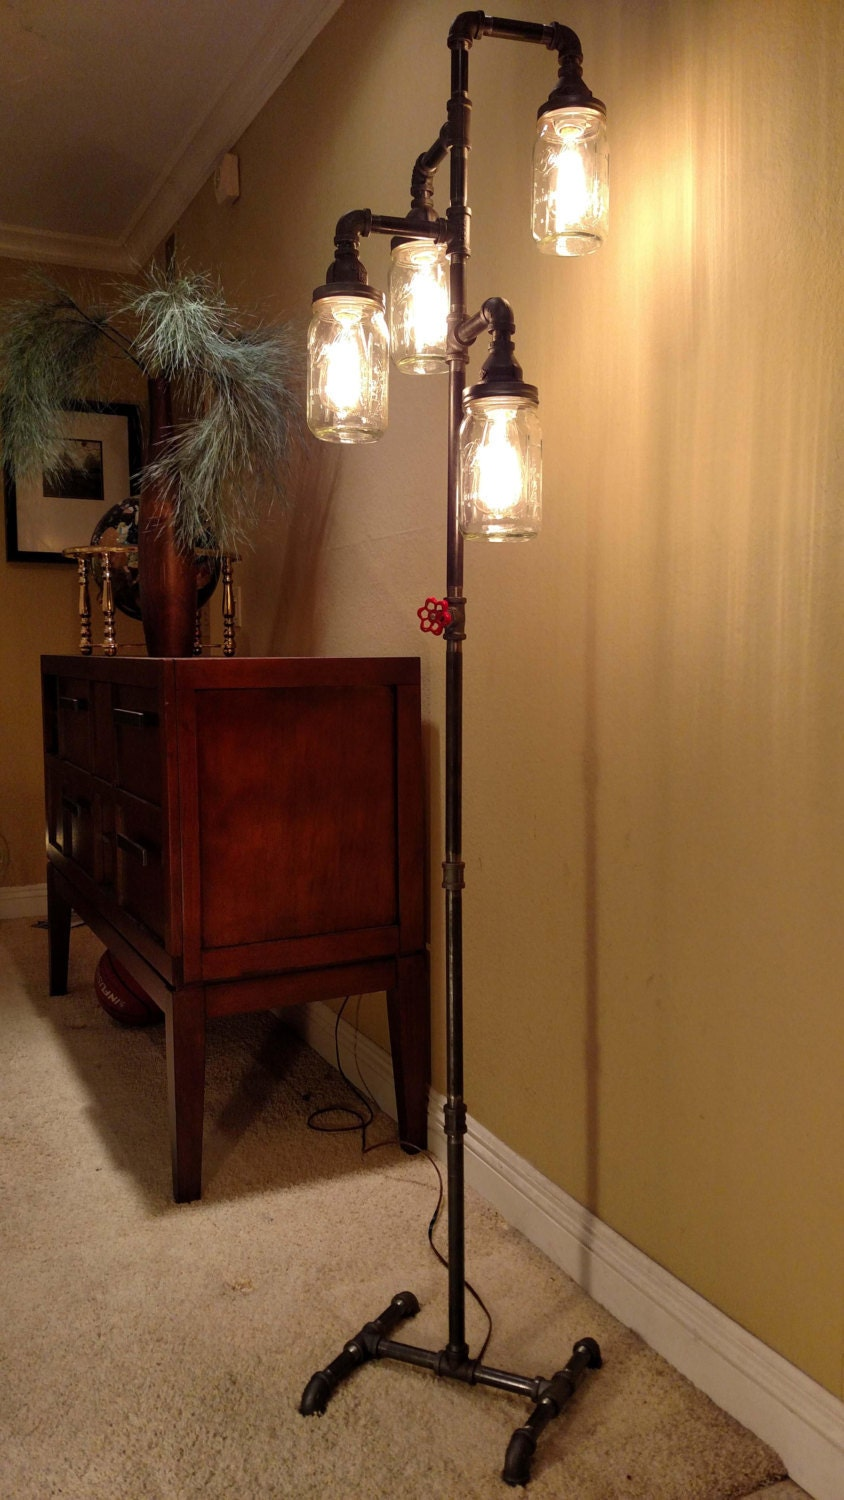 Pipe floor lamp 4 fixture living room steampunk mason jar does Living room lamp